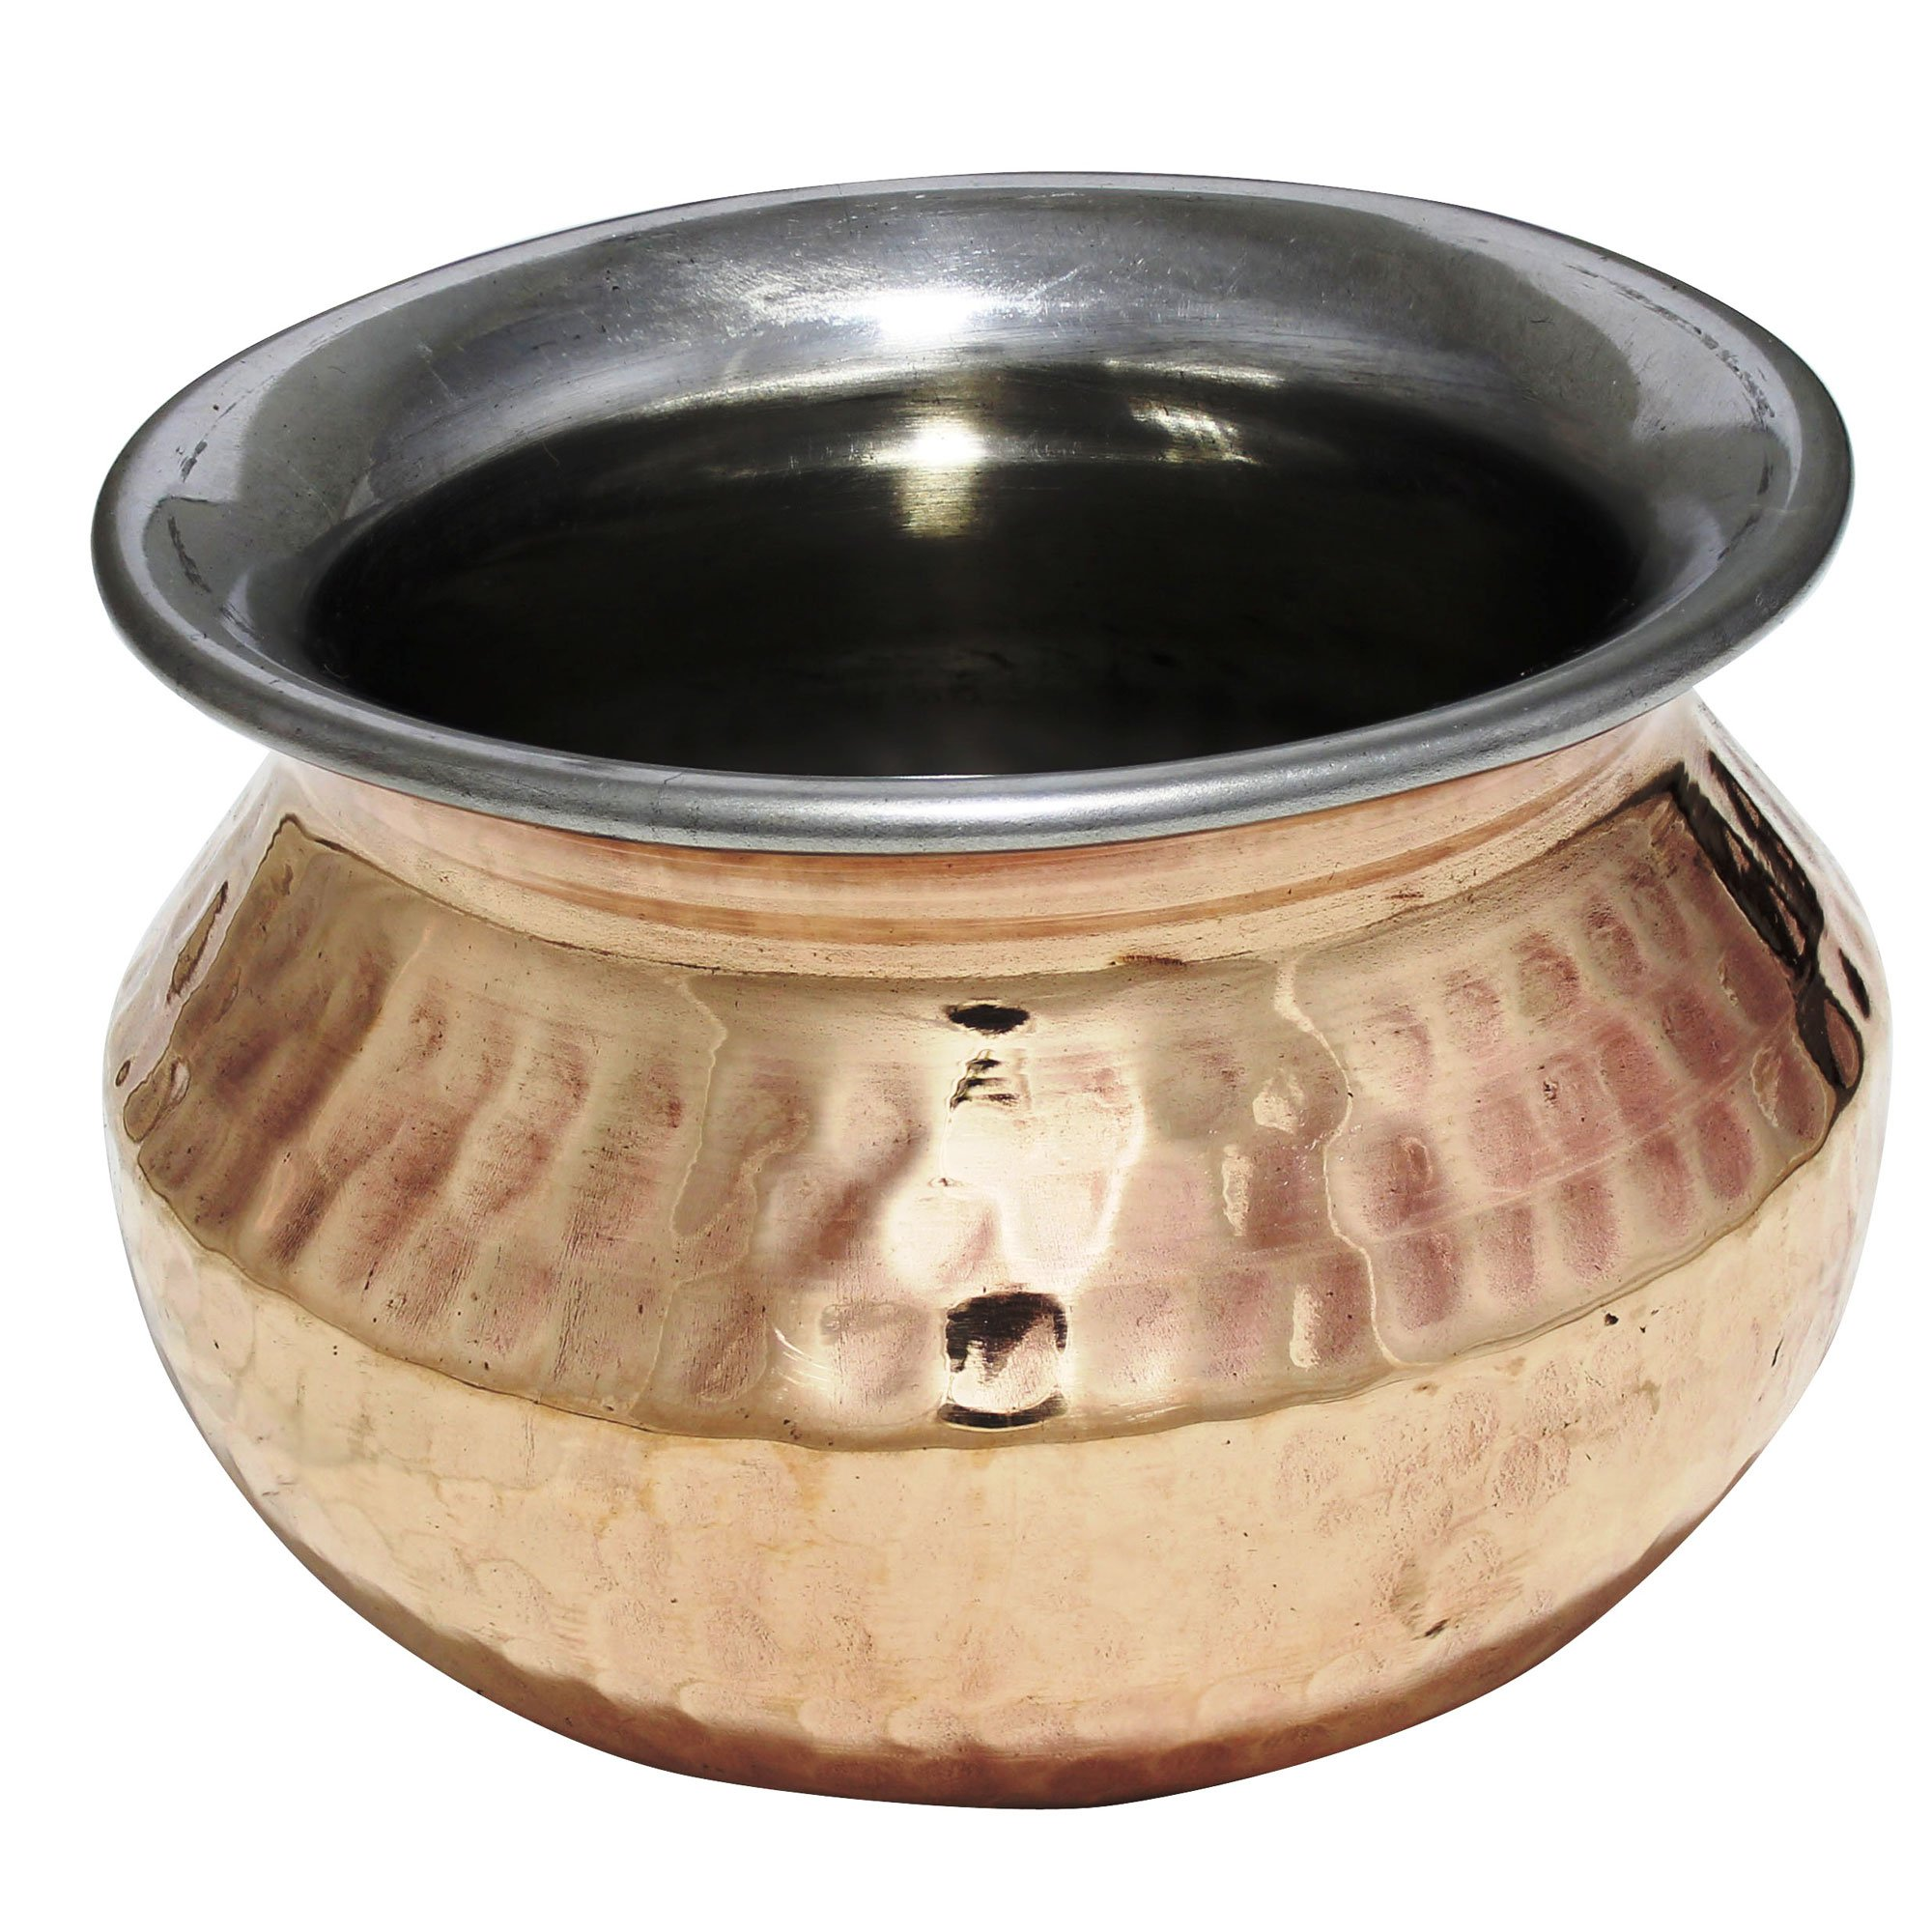 Gifts for Parents Day!! Serveware Handi Pot Copper Stainless Steel Serving Bowl Utensils - Indian Serveware and Tableware Accessories